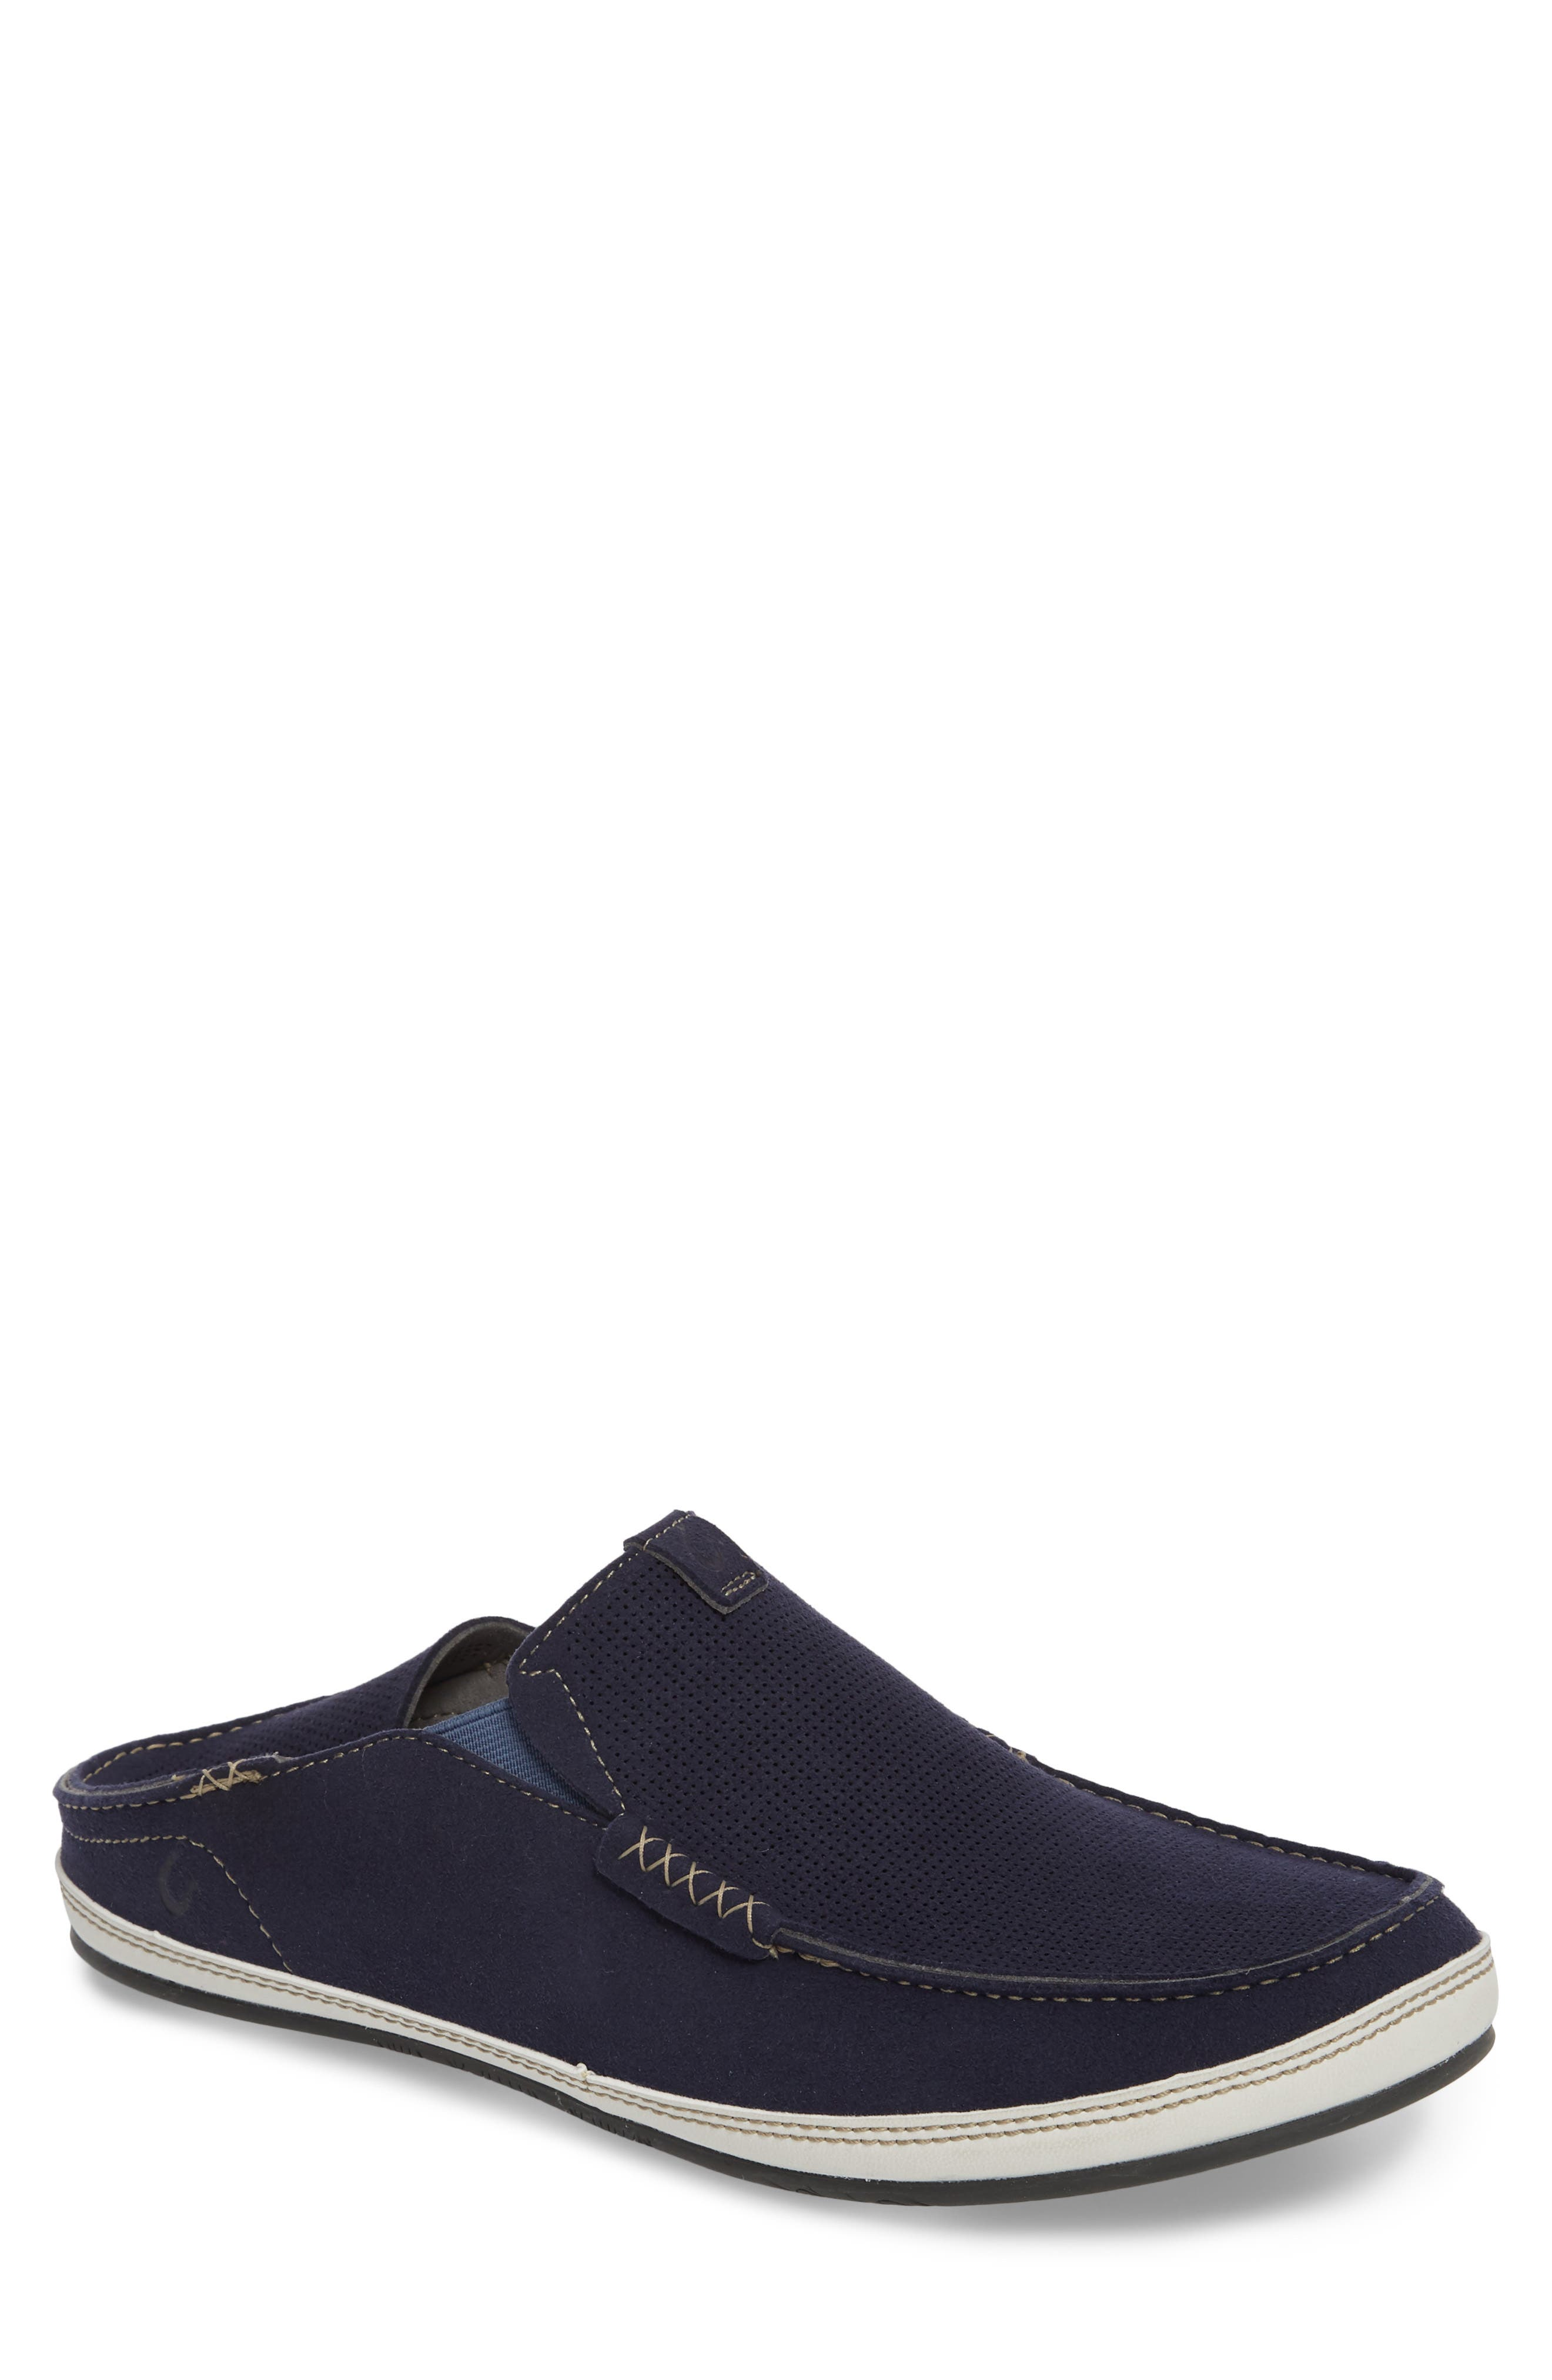 Kauwela Collapsible Slip-On,                         Main,                         color, TRENCH BLUE/ OFF WHITE